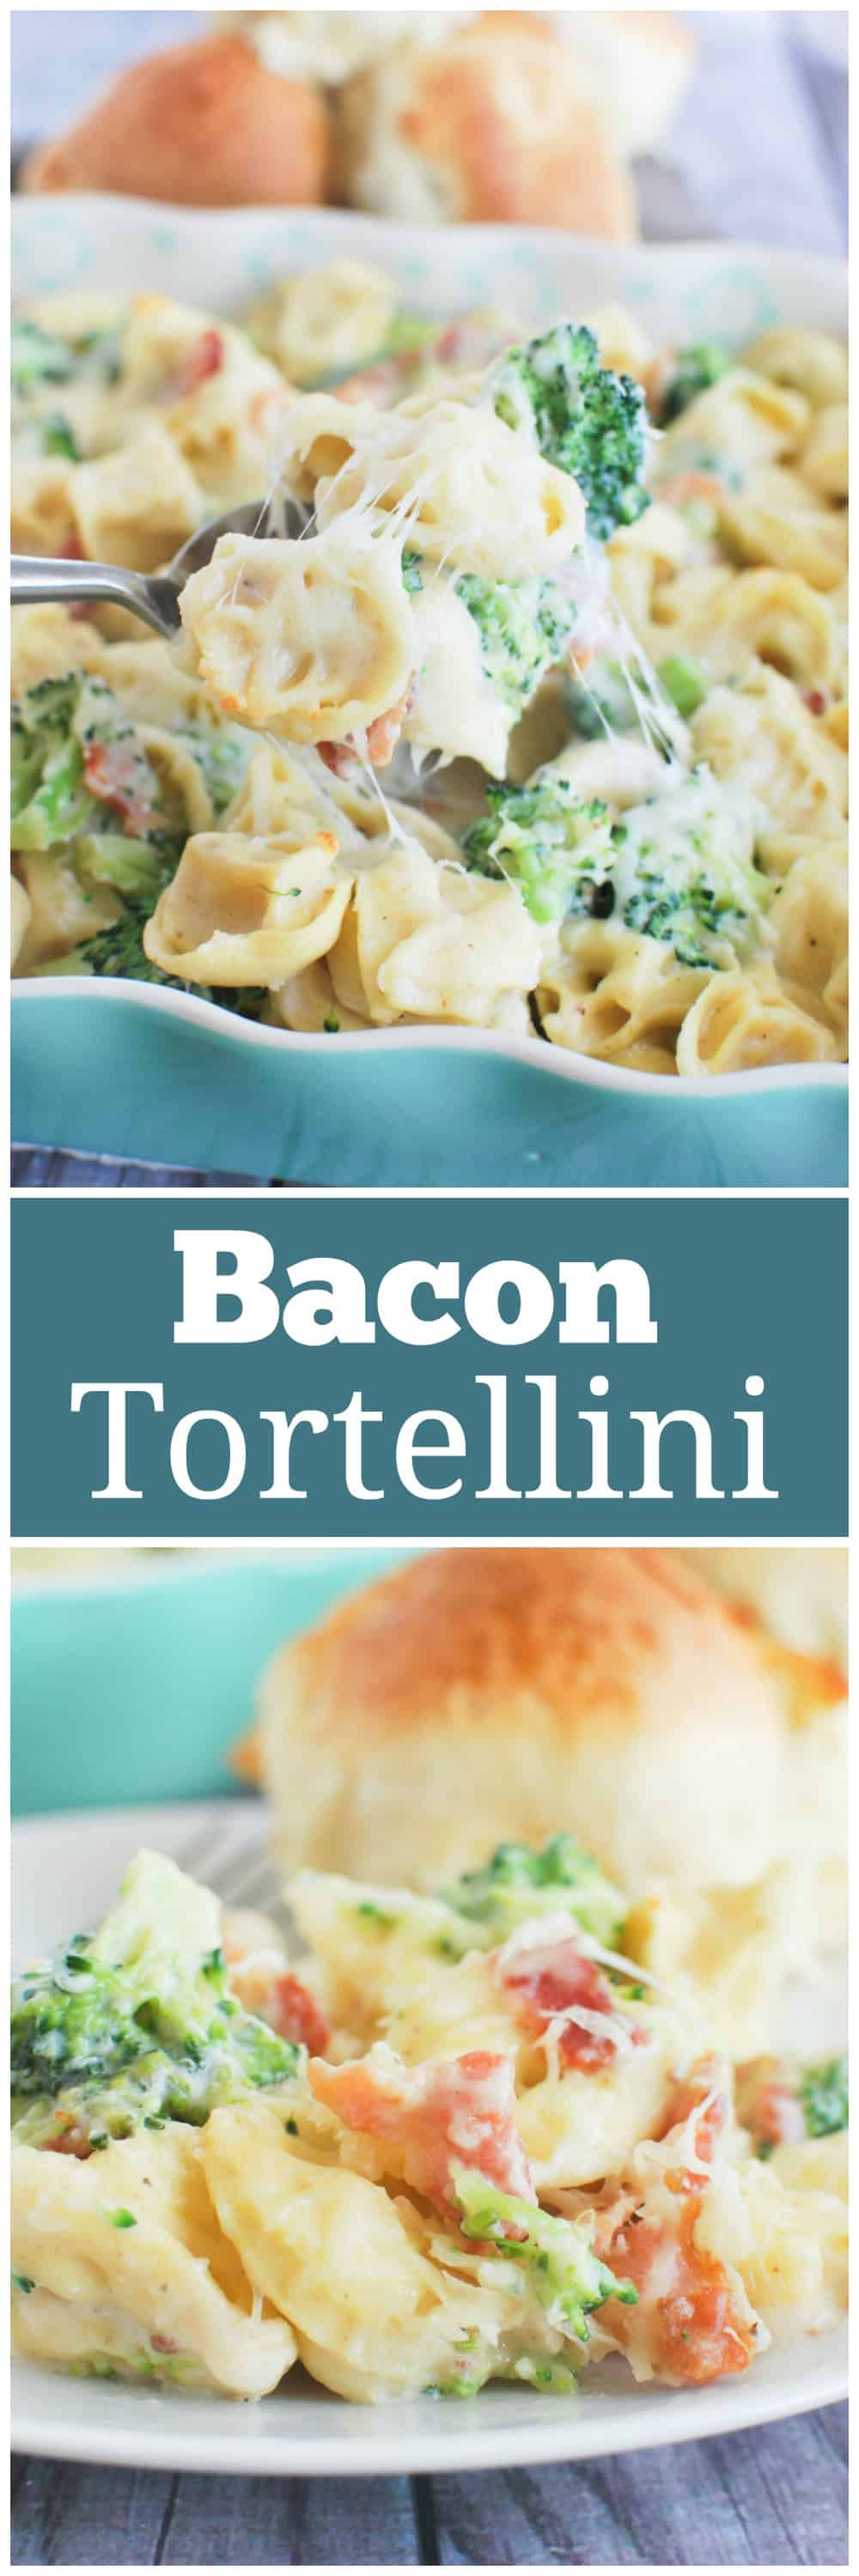 Bacon Tortellini Bake - delicious 30 minute meal! Cheese tortellini, bacon, and broccoli in a creamy cheese sauce! A favorite of kids and adults!